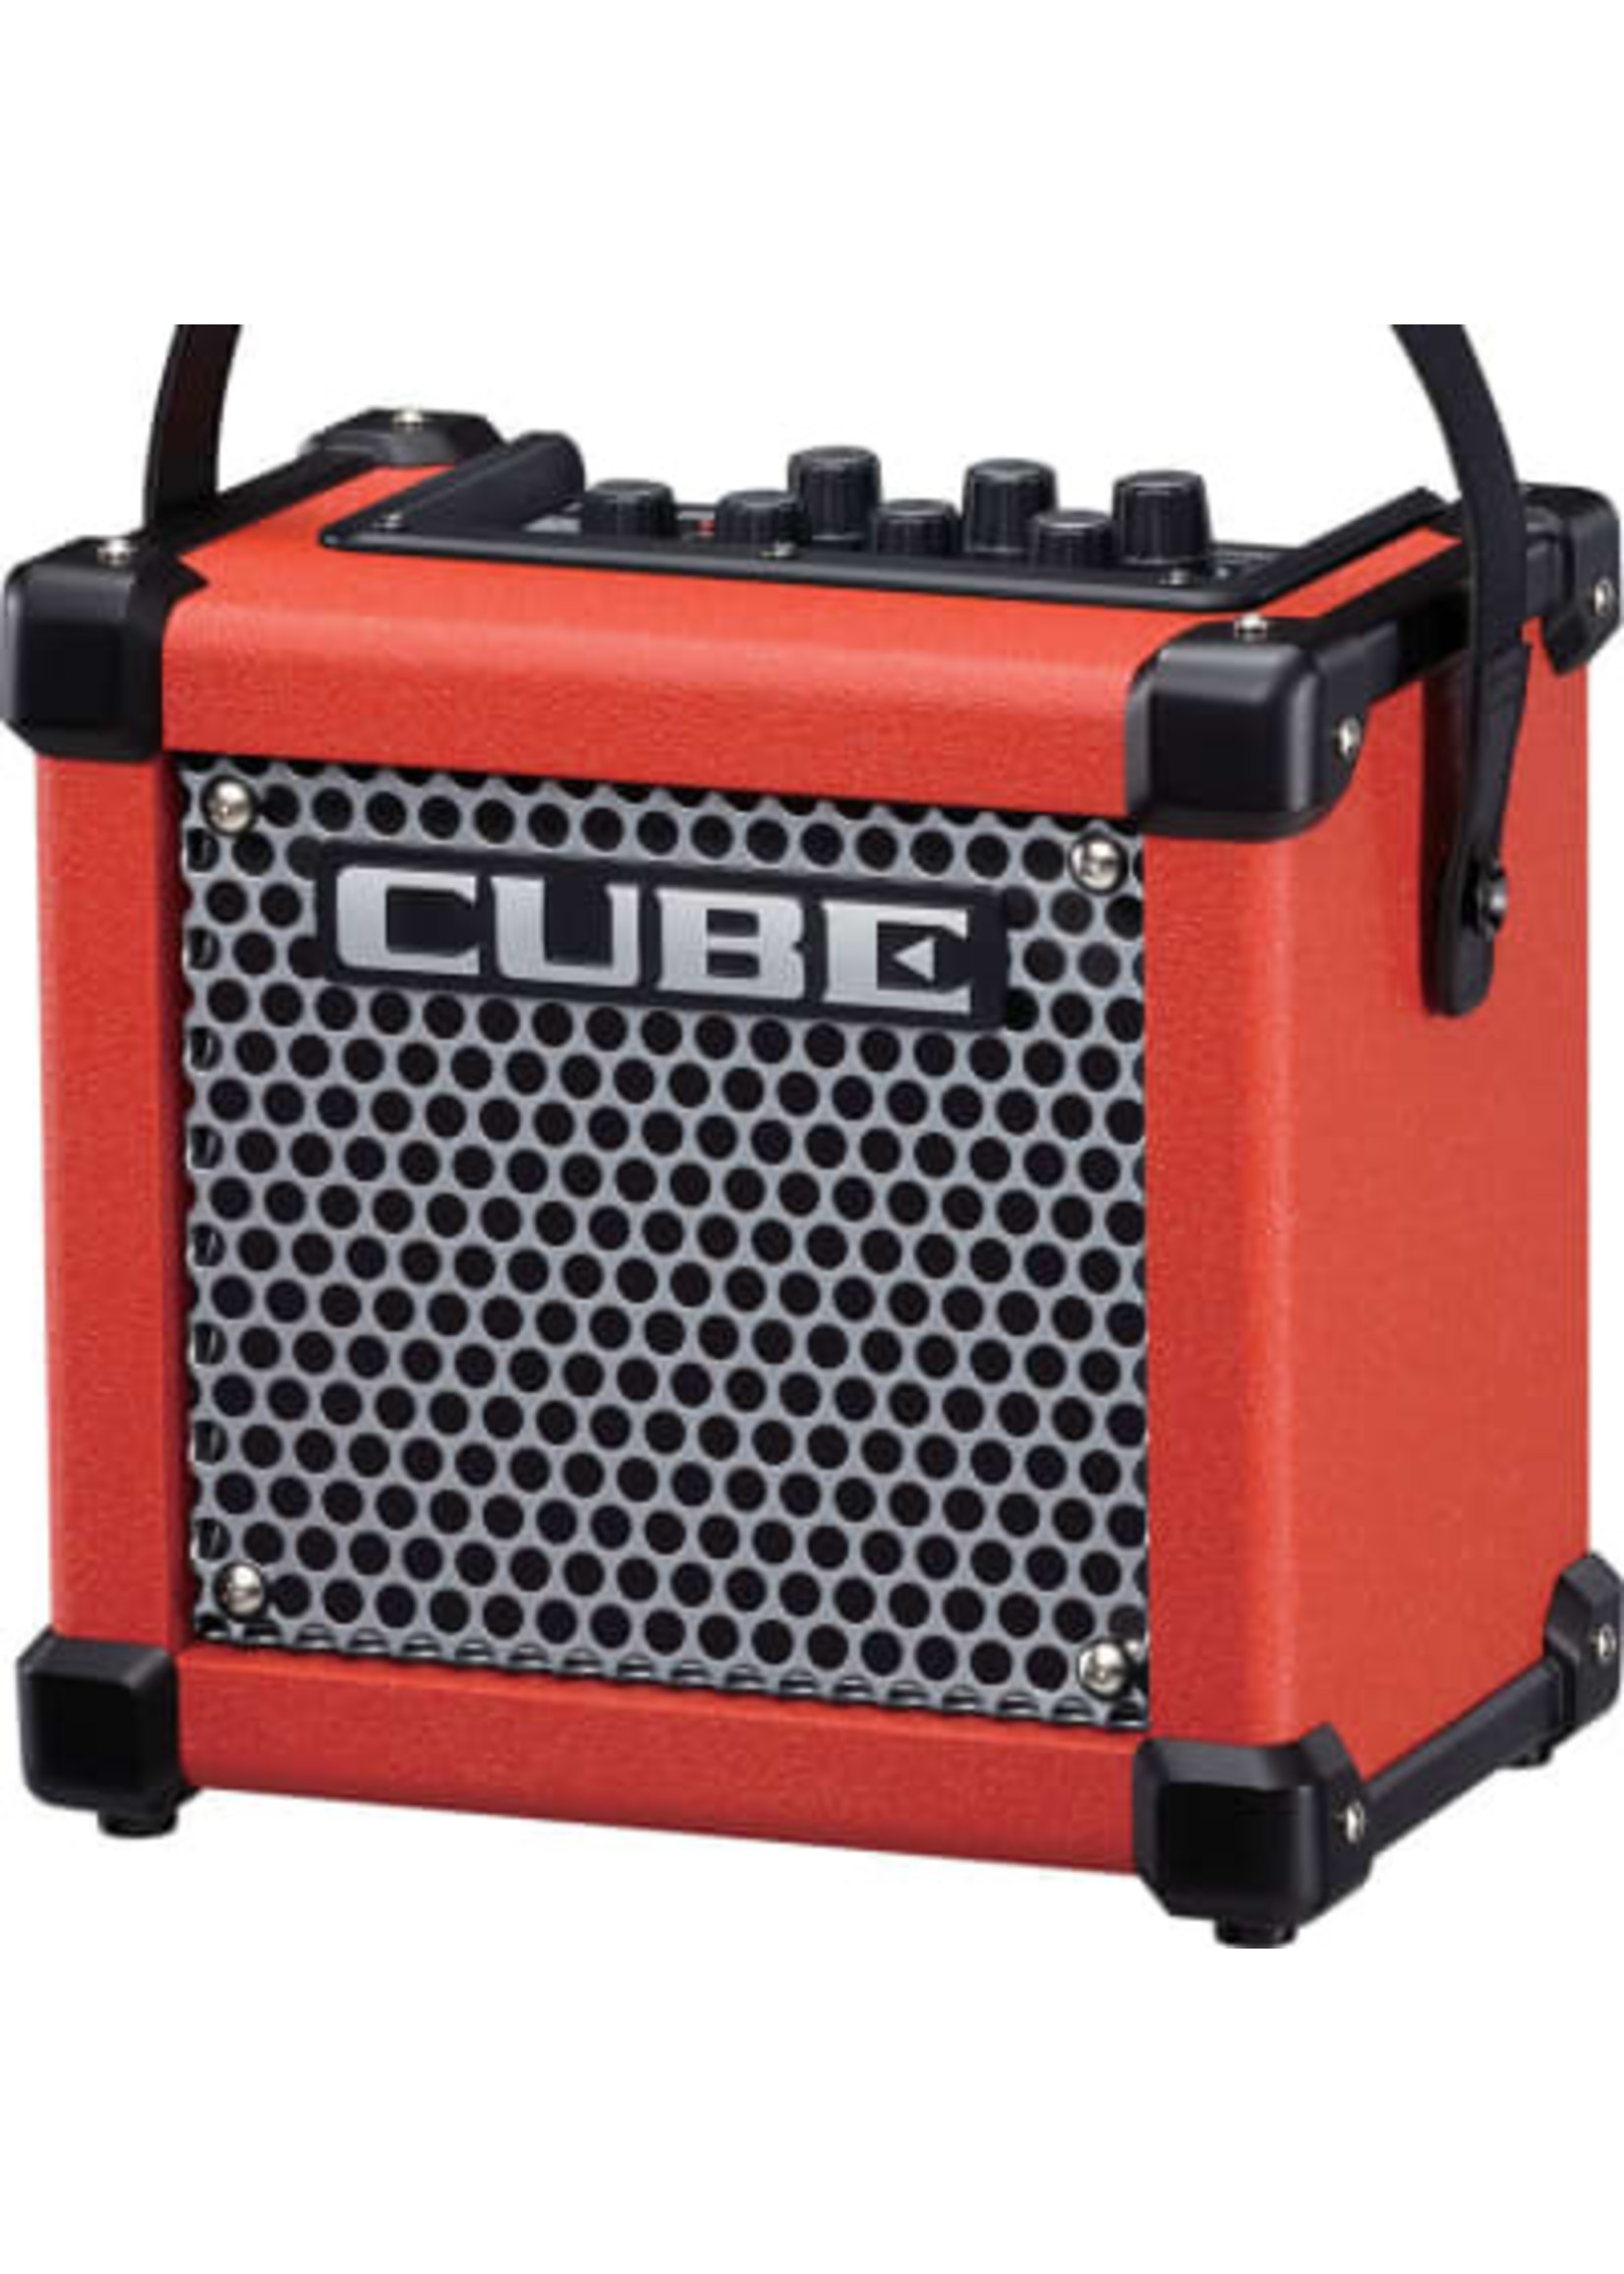 Roland Roland M-CUBE-GXR Micro Cube Guitar Amp Red